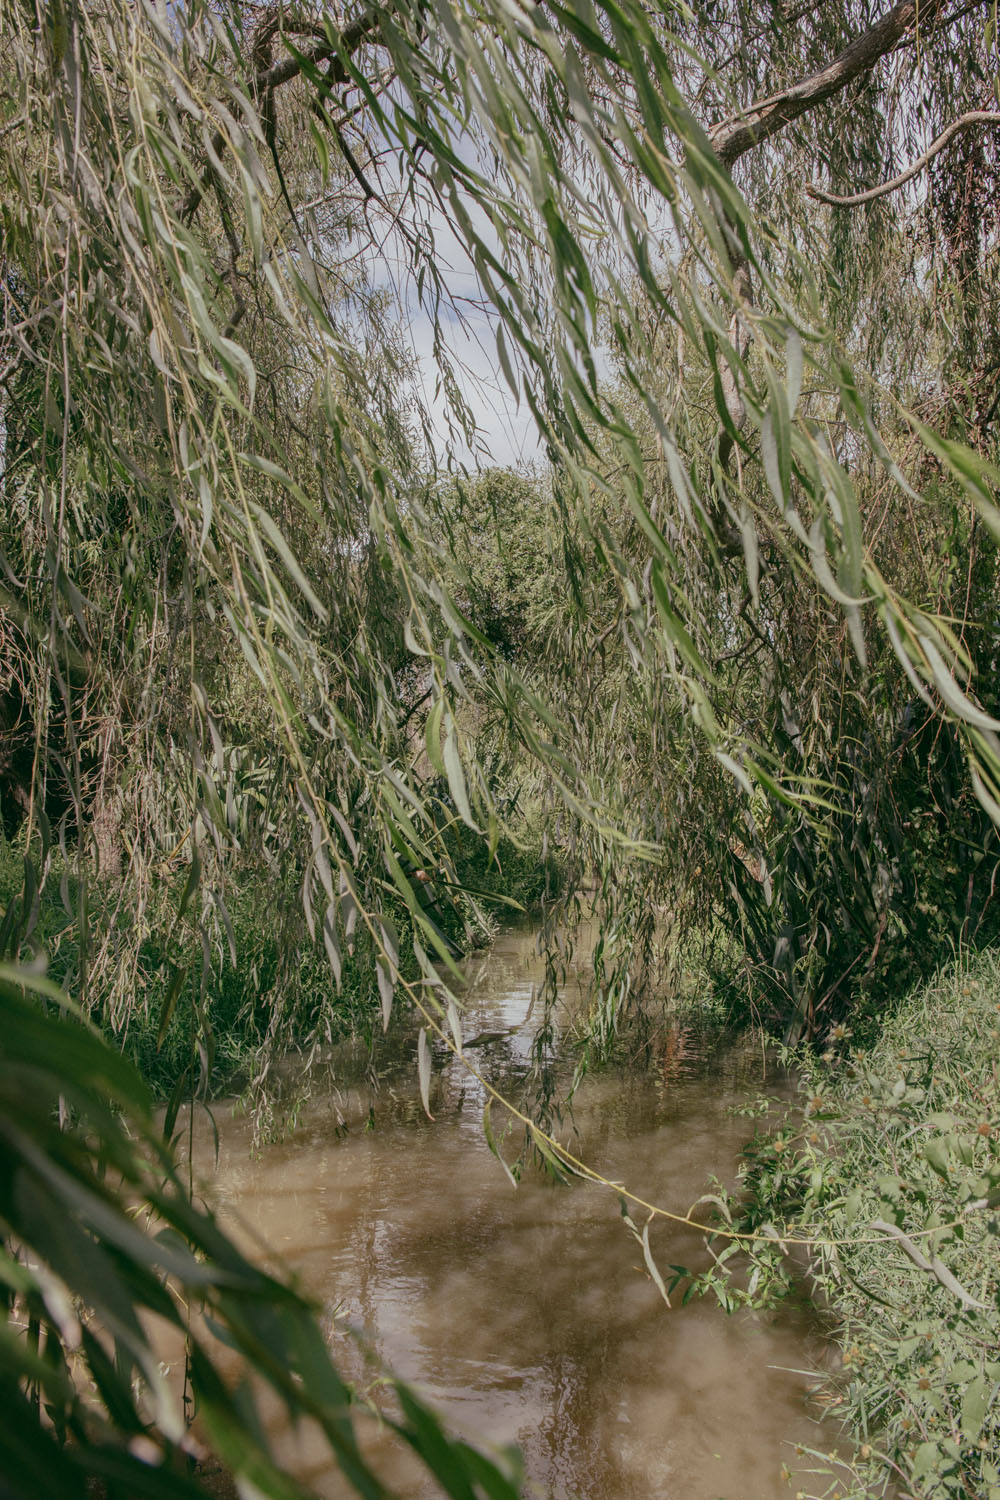 Kate van der Drift ,  Canal, From the River East , 2018, archival pigment print on matte photo rag, edition of 3, 900mm x 600mm